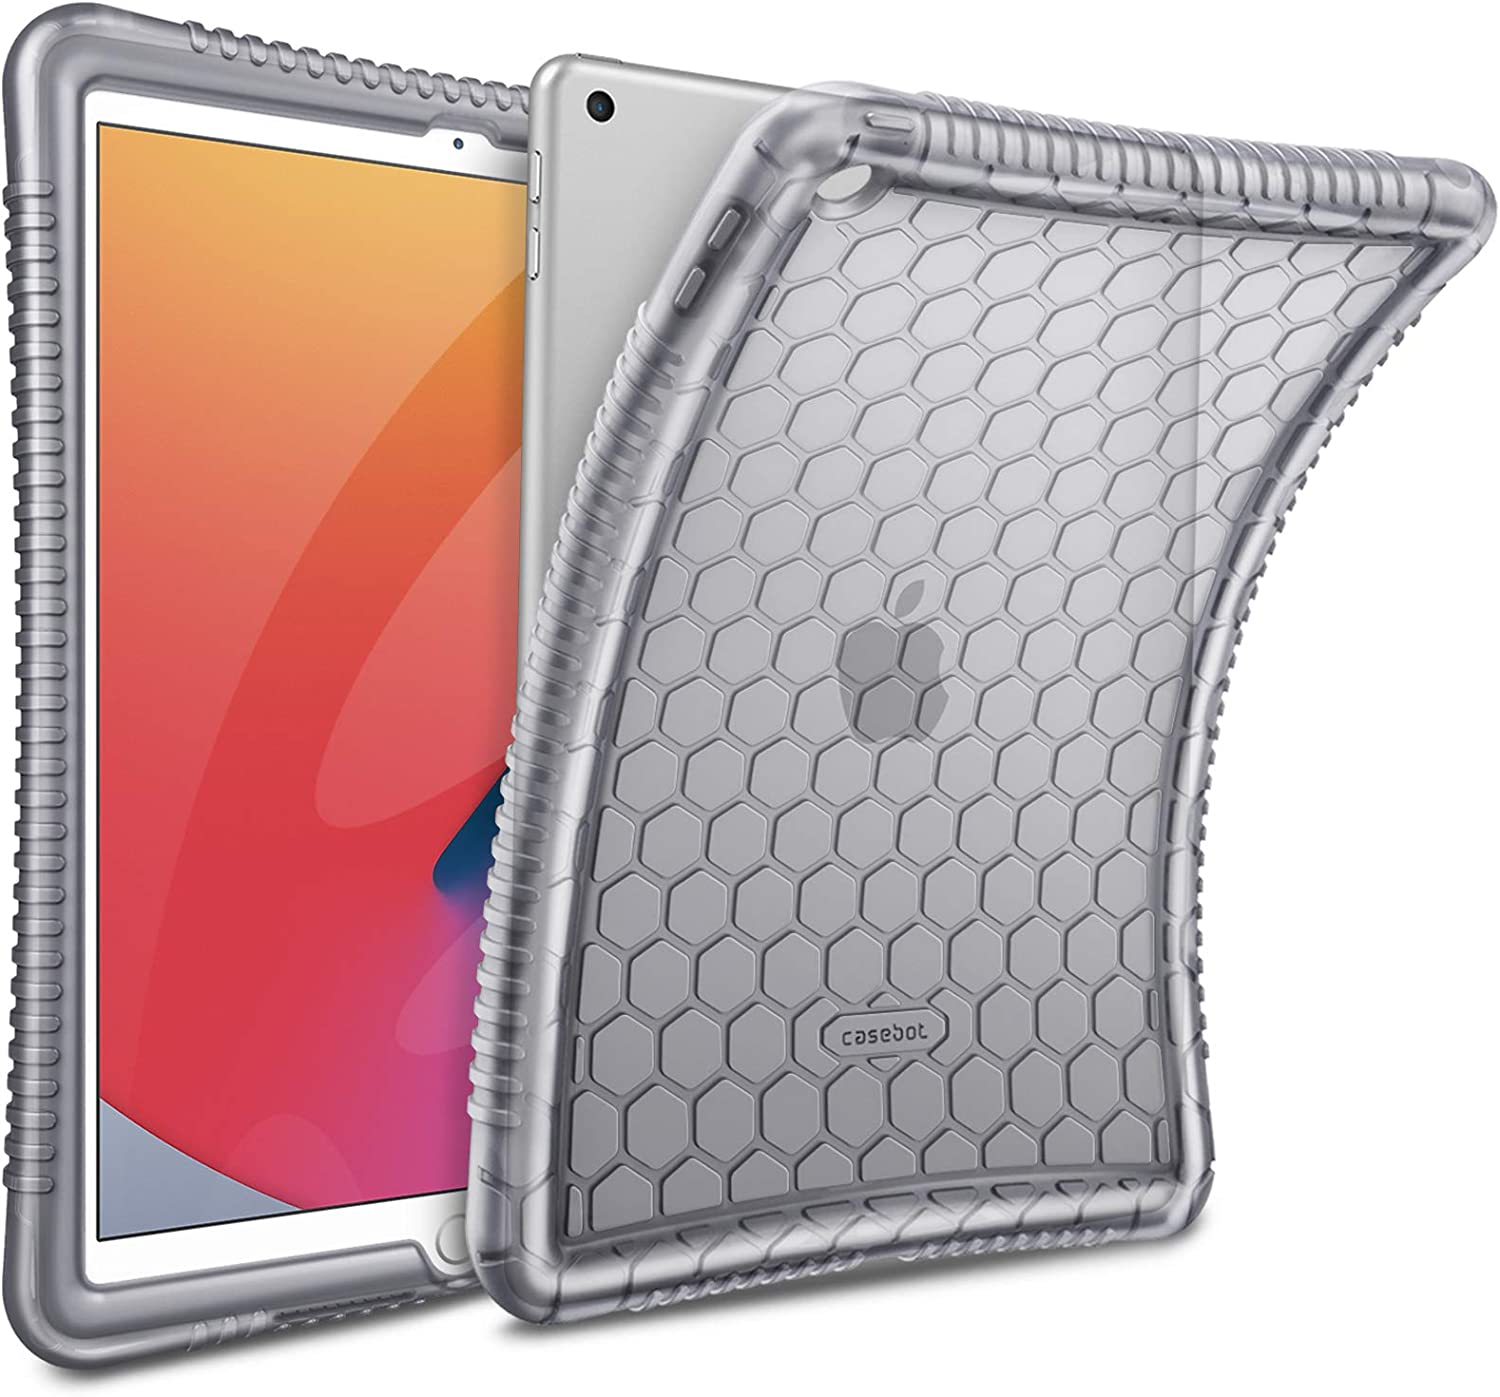 Fintie Case for New iPad 8th Gen (2020) / 7th Generation (2019) 10.2 Inch - [Honey Comb Series] Light Weight Anti Slip Kids Friendly Shock Proof Soft Silicone Protective Cover, Semi-Transparent Smoke